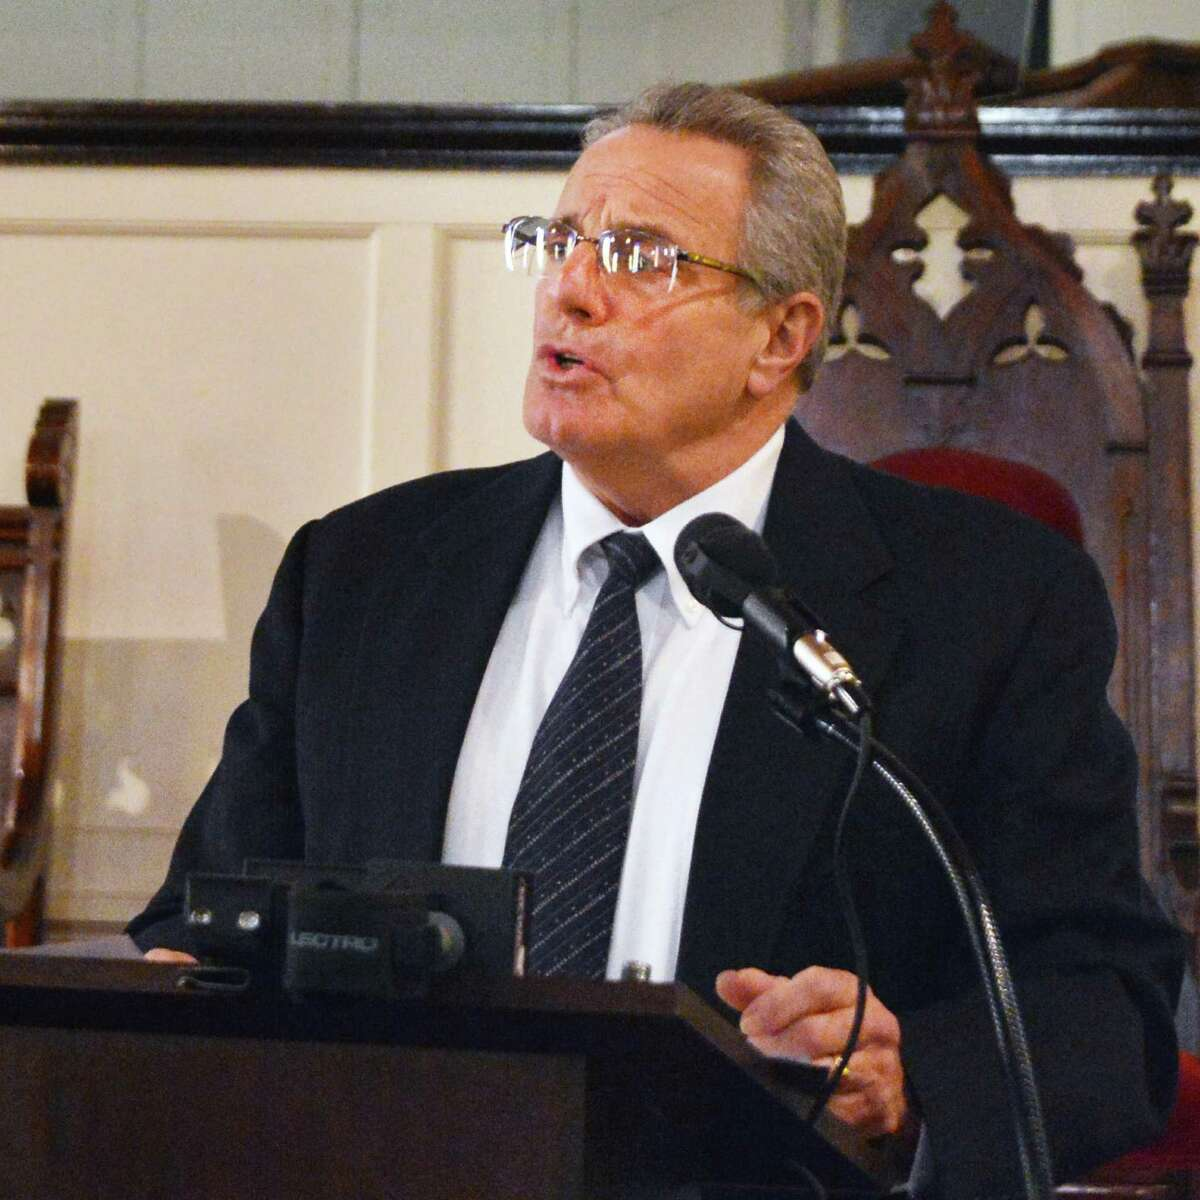 Troy Mayor Lou Rosamilia speaks during a ceremony to recognize the listing of the Oakwood Avenue Presbyterian Church on the National Register of Historic Places, at the church in Troy Tuesday Jan. 29, 2013. (John Carl D'Annibale / Times Union)